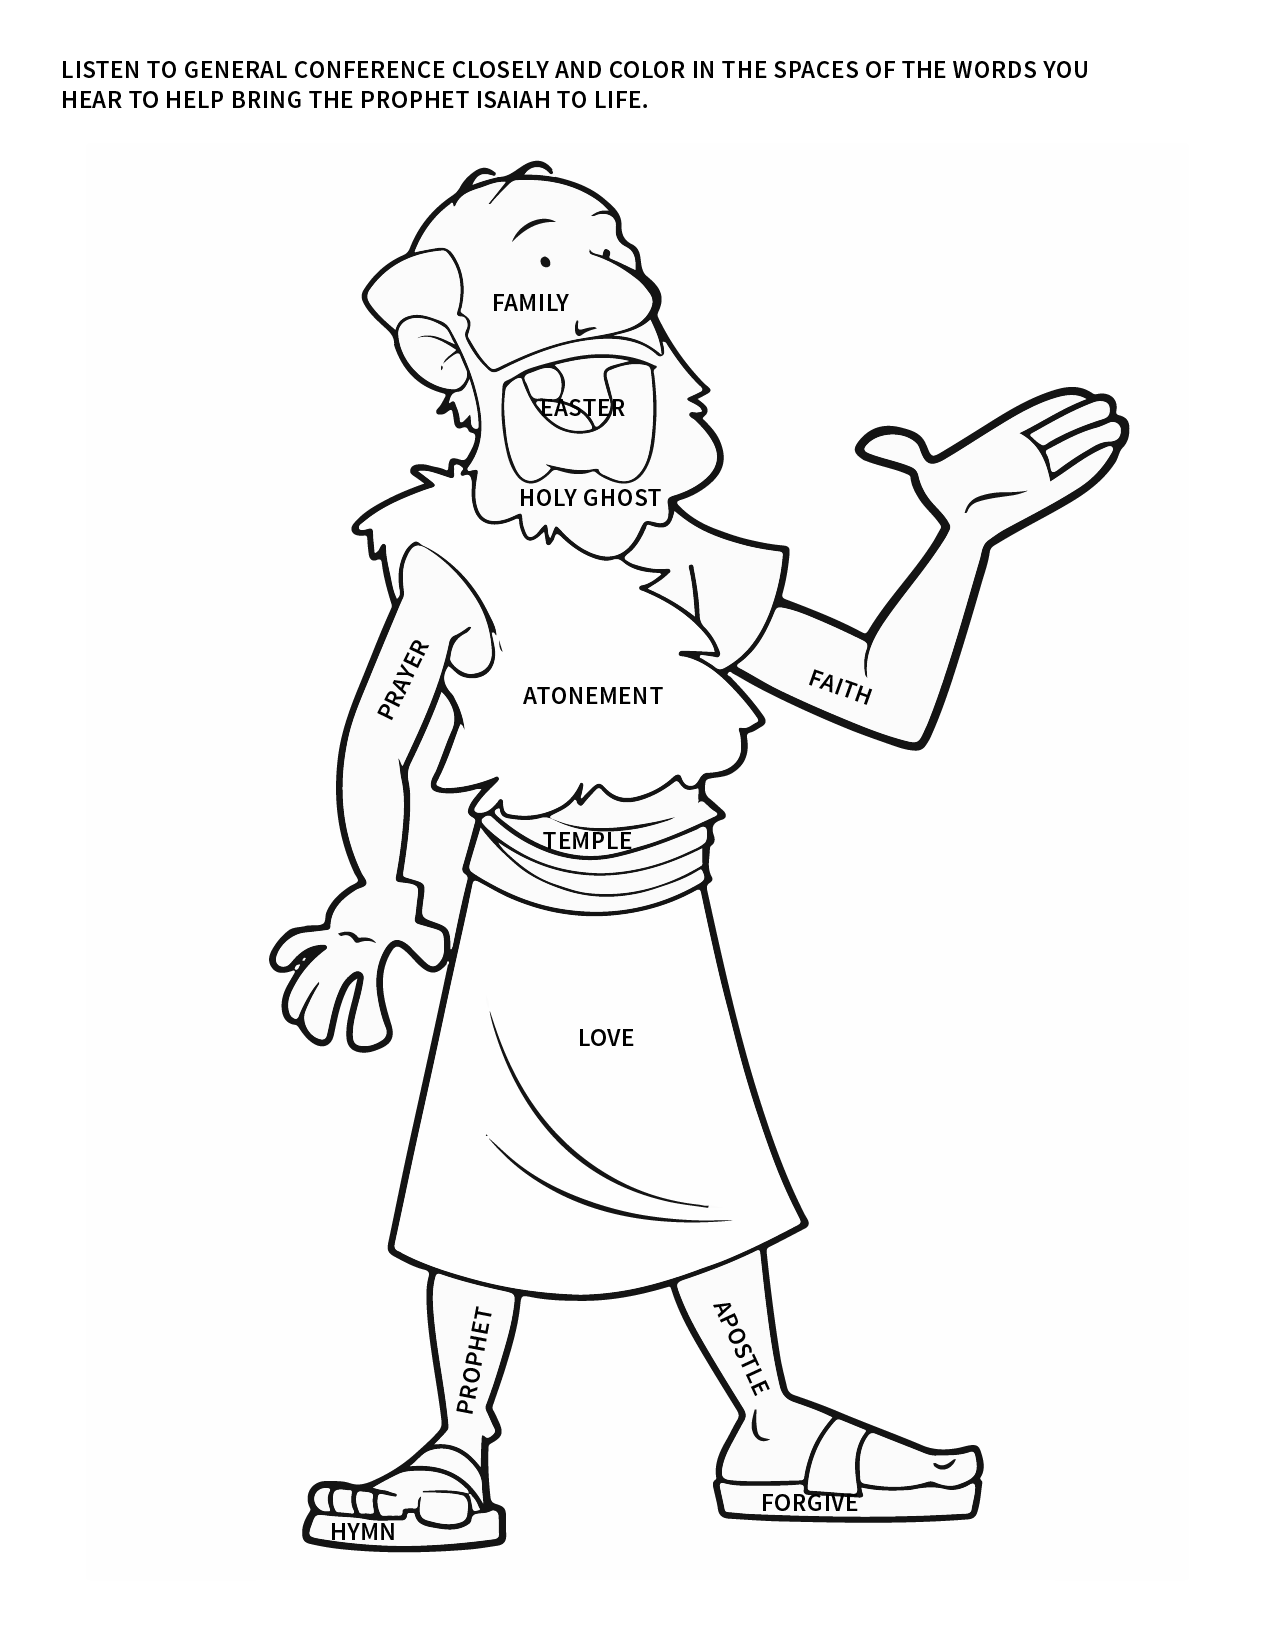 Easy General Conference Coloring Activity